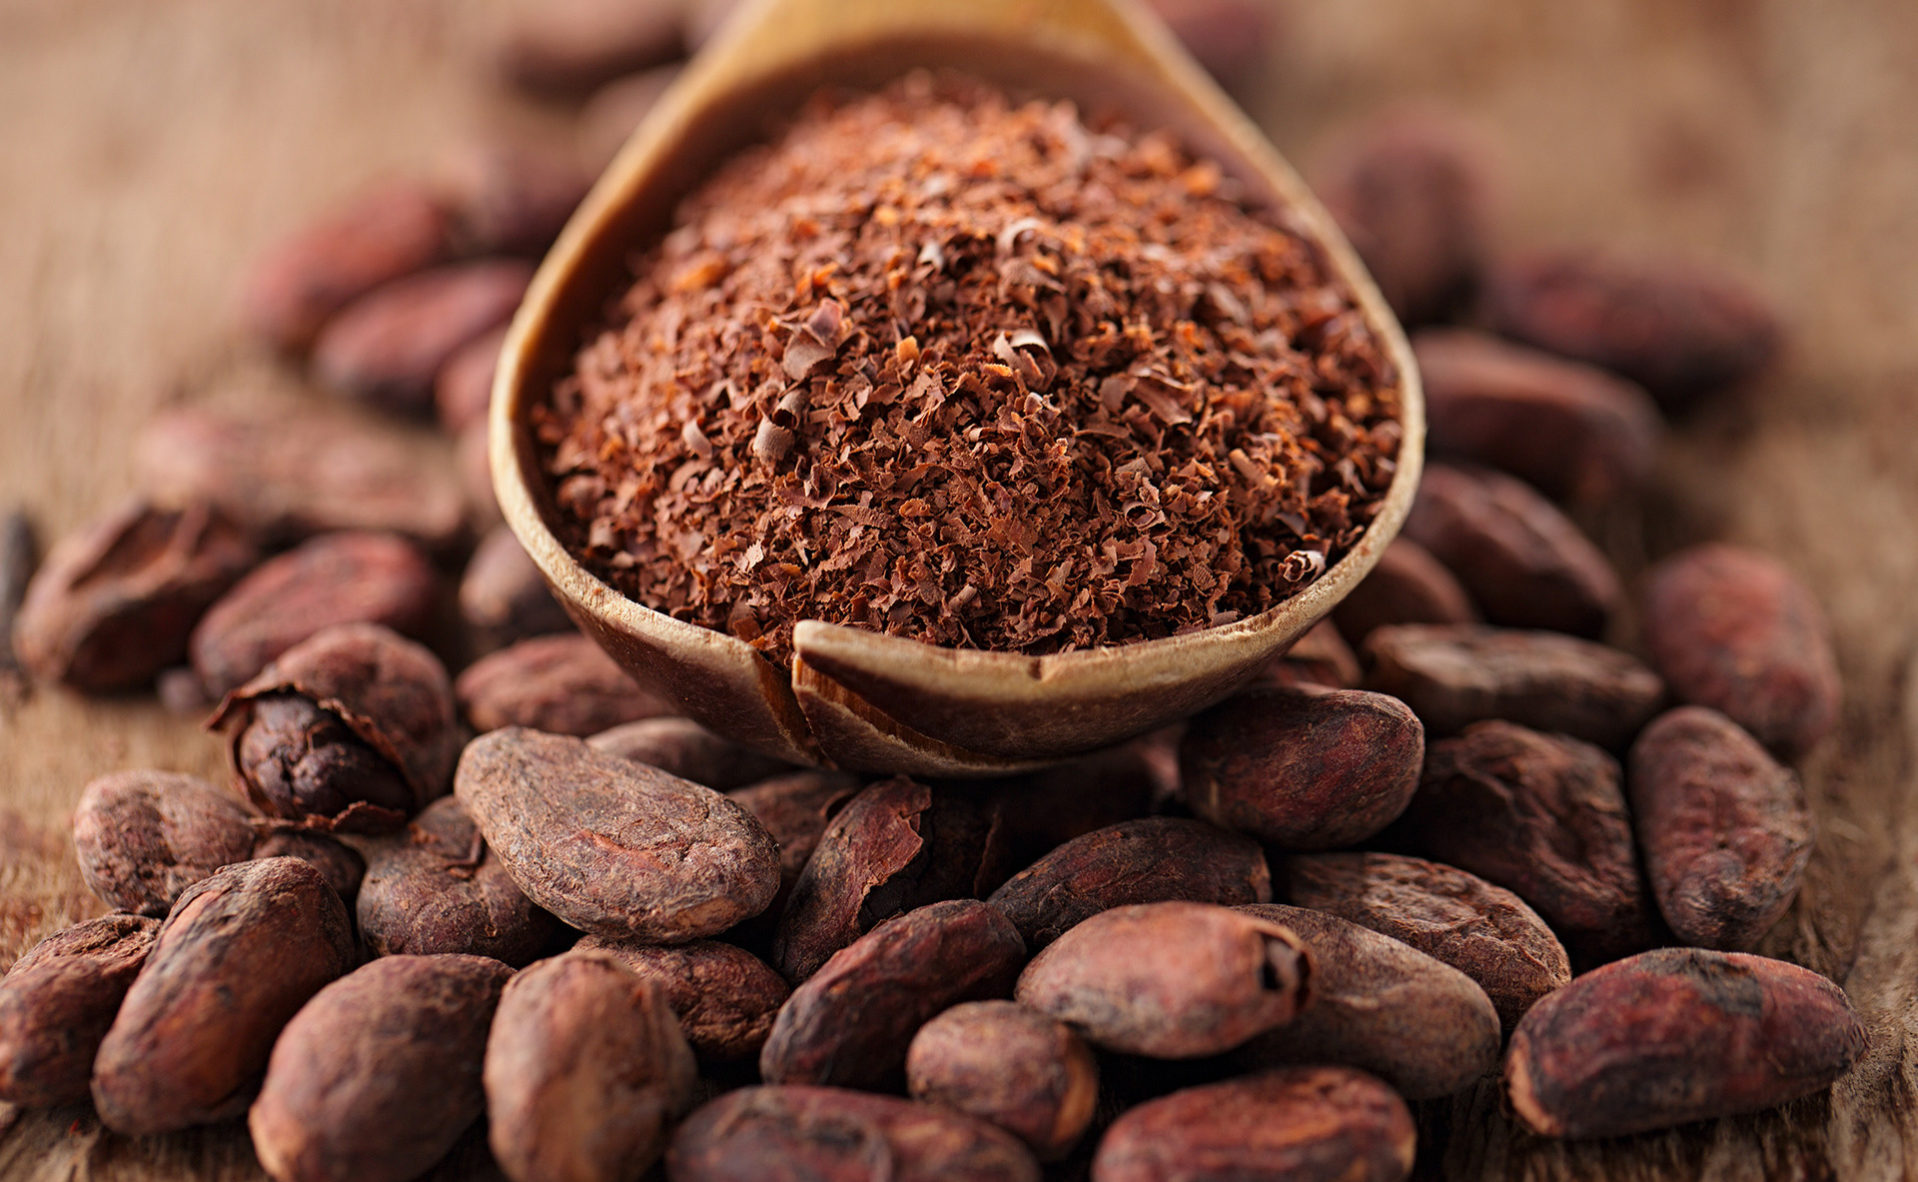 cocoa e1472888470987 - AFREXIM Bank, ICCO, NEXIM Bank others restate recommit to cocoa sector revamping